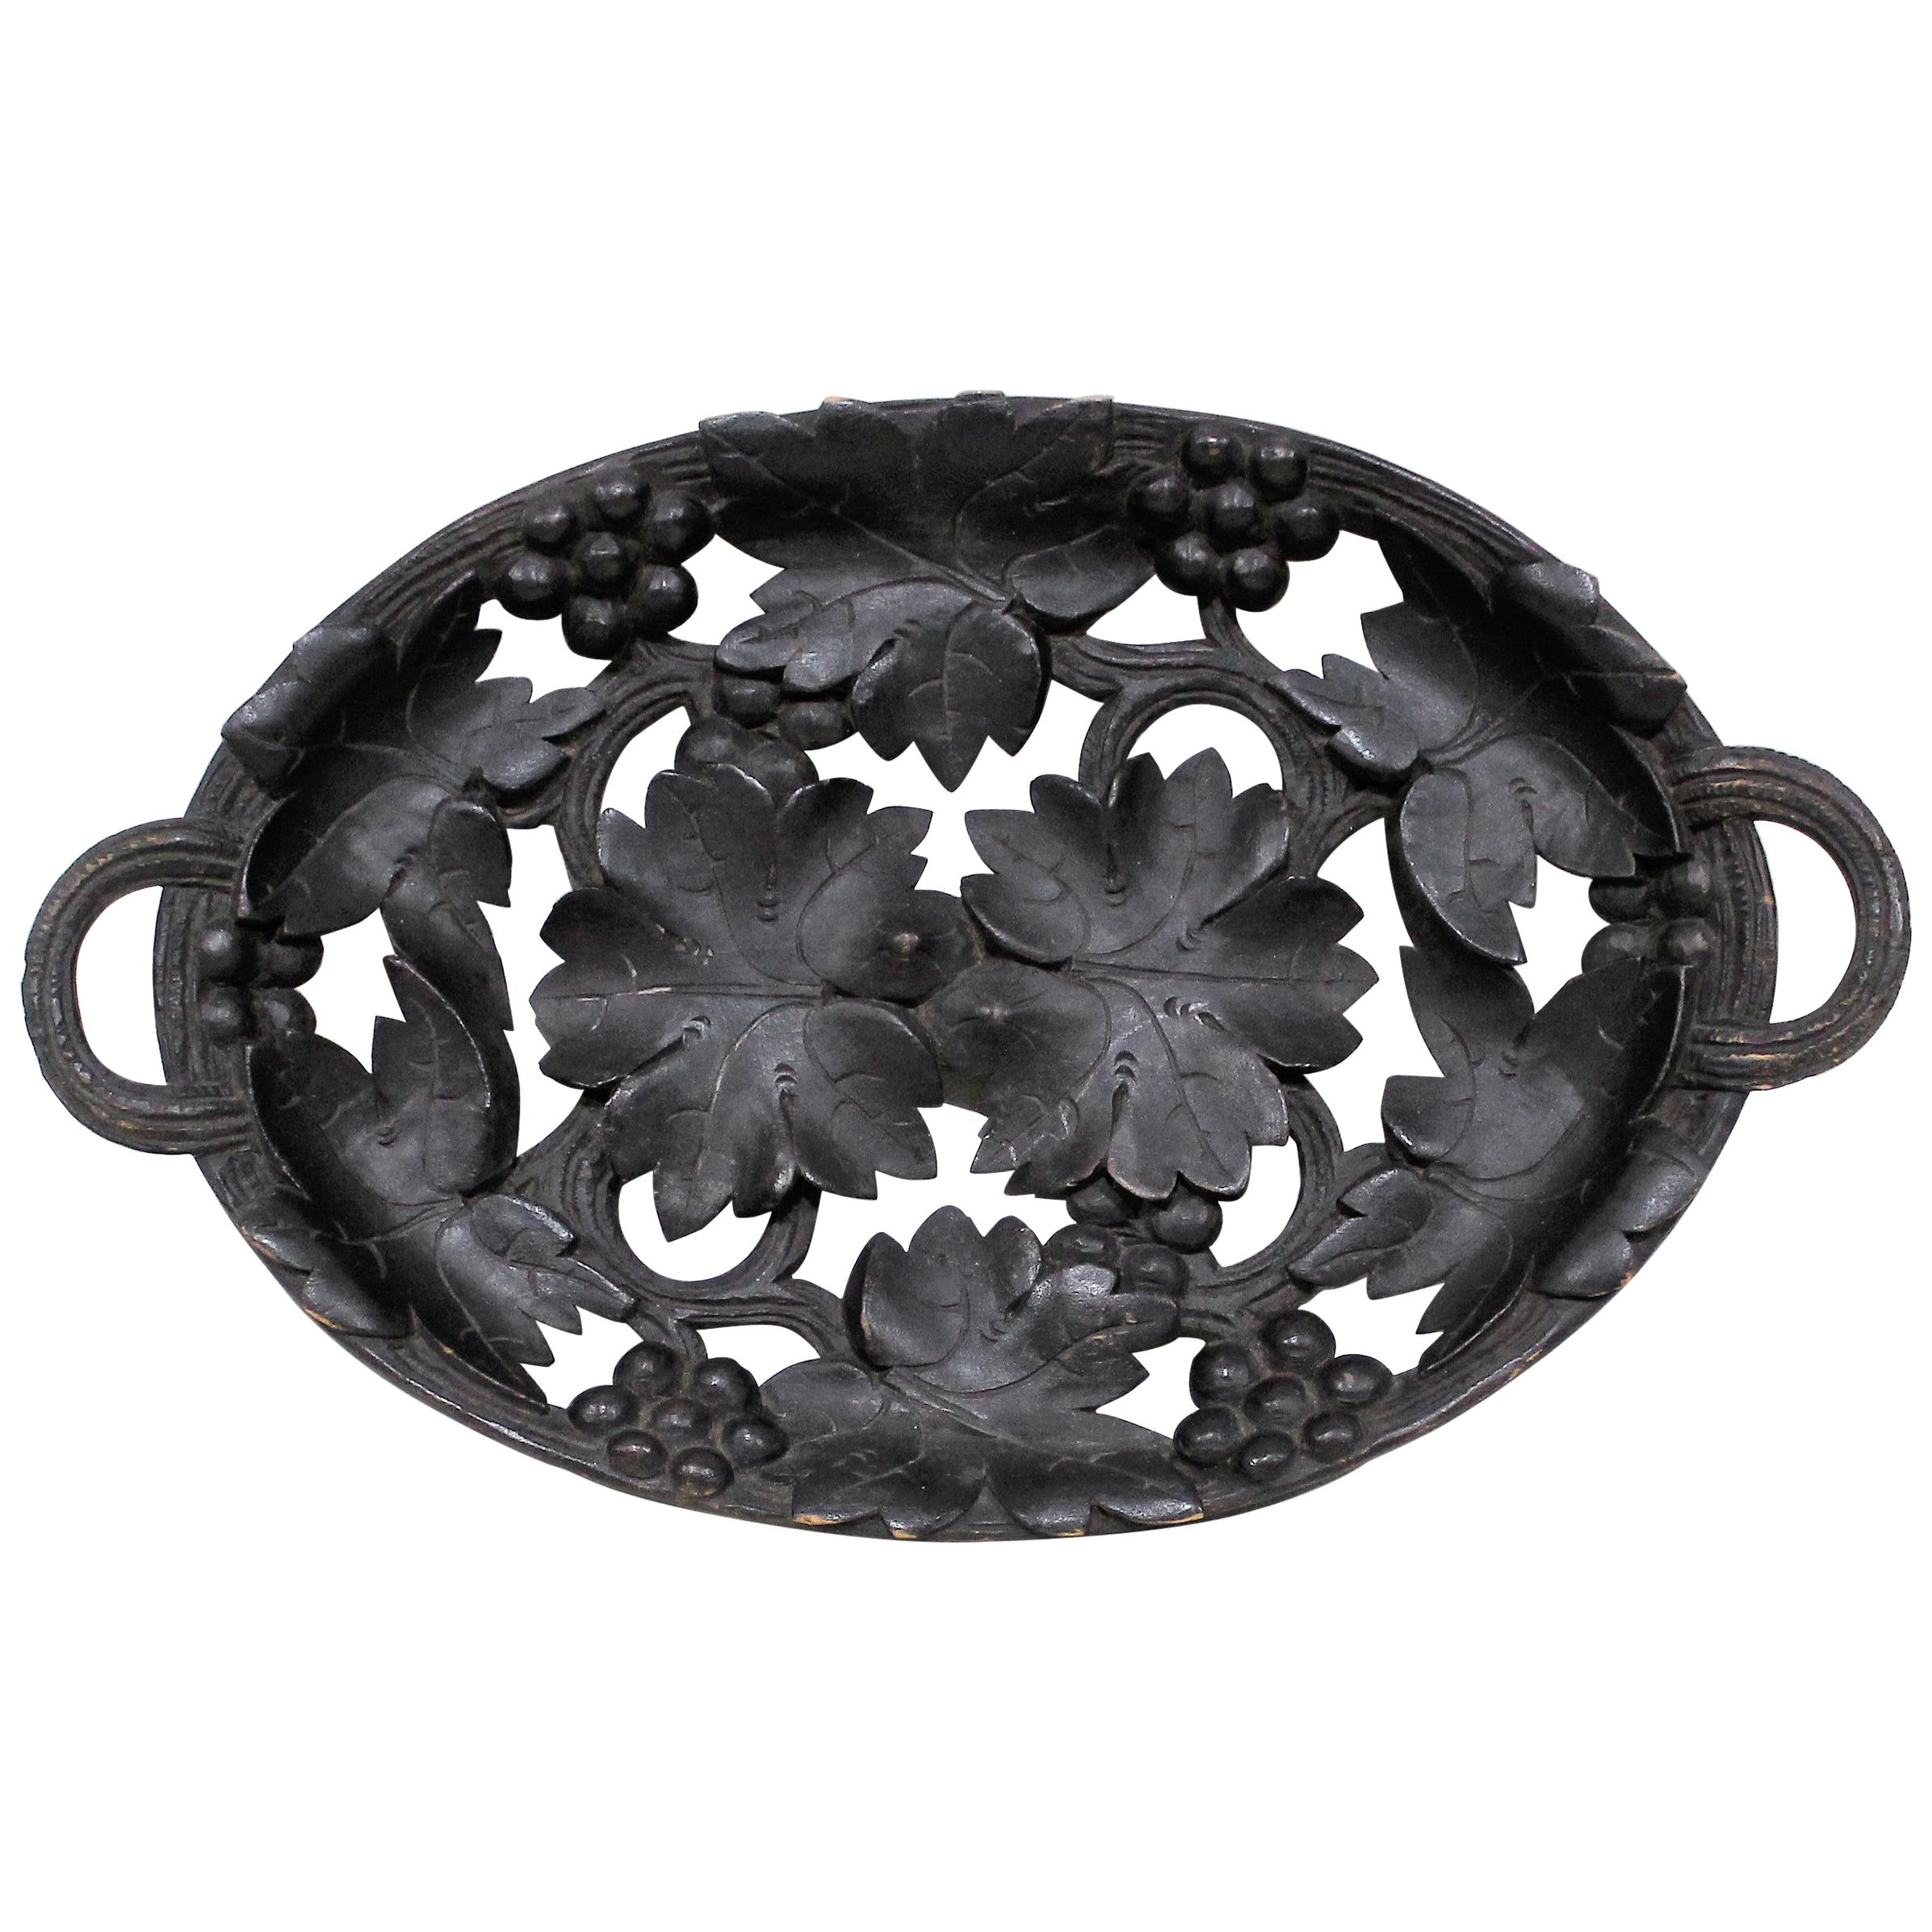 19th Century Black Forest Carved Walnut Serving Tray or Bowl